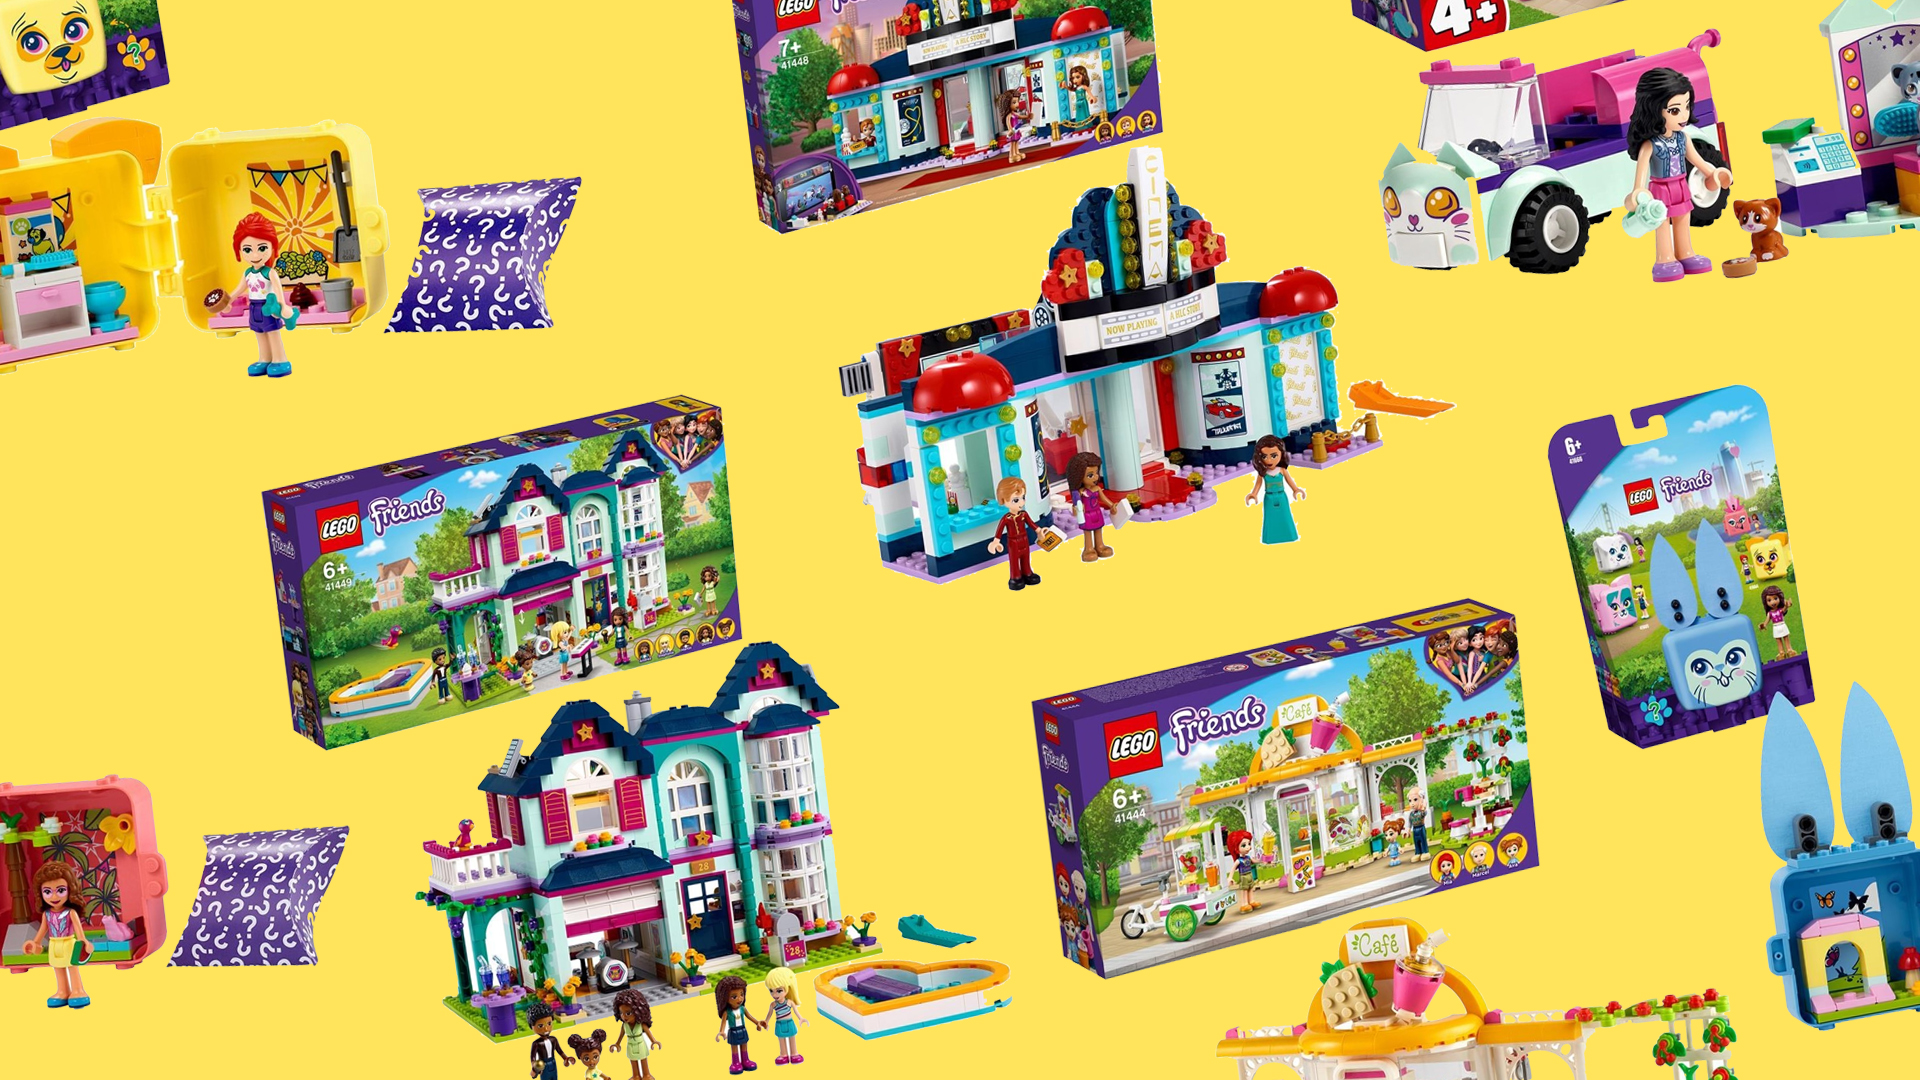 Lego Friends 2021 Sets Revealed The Brick Post